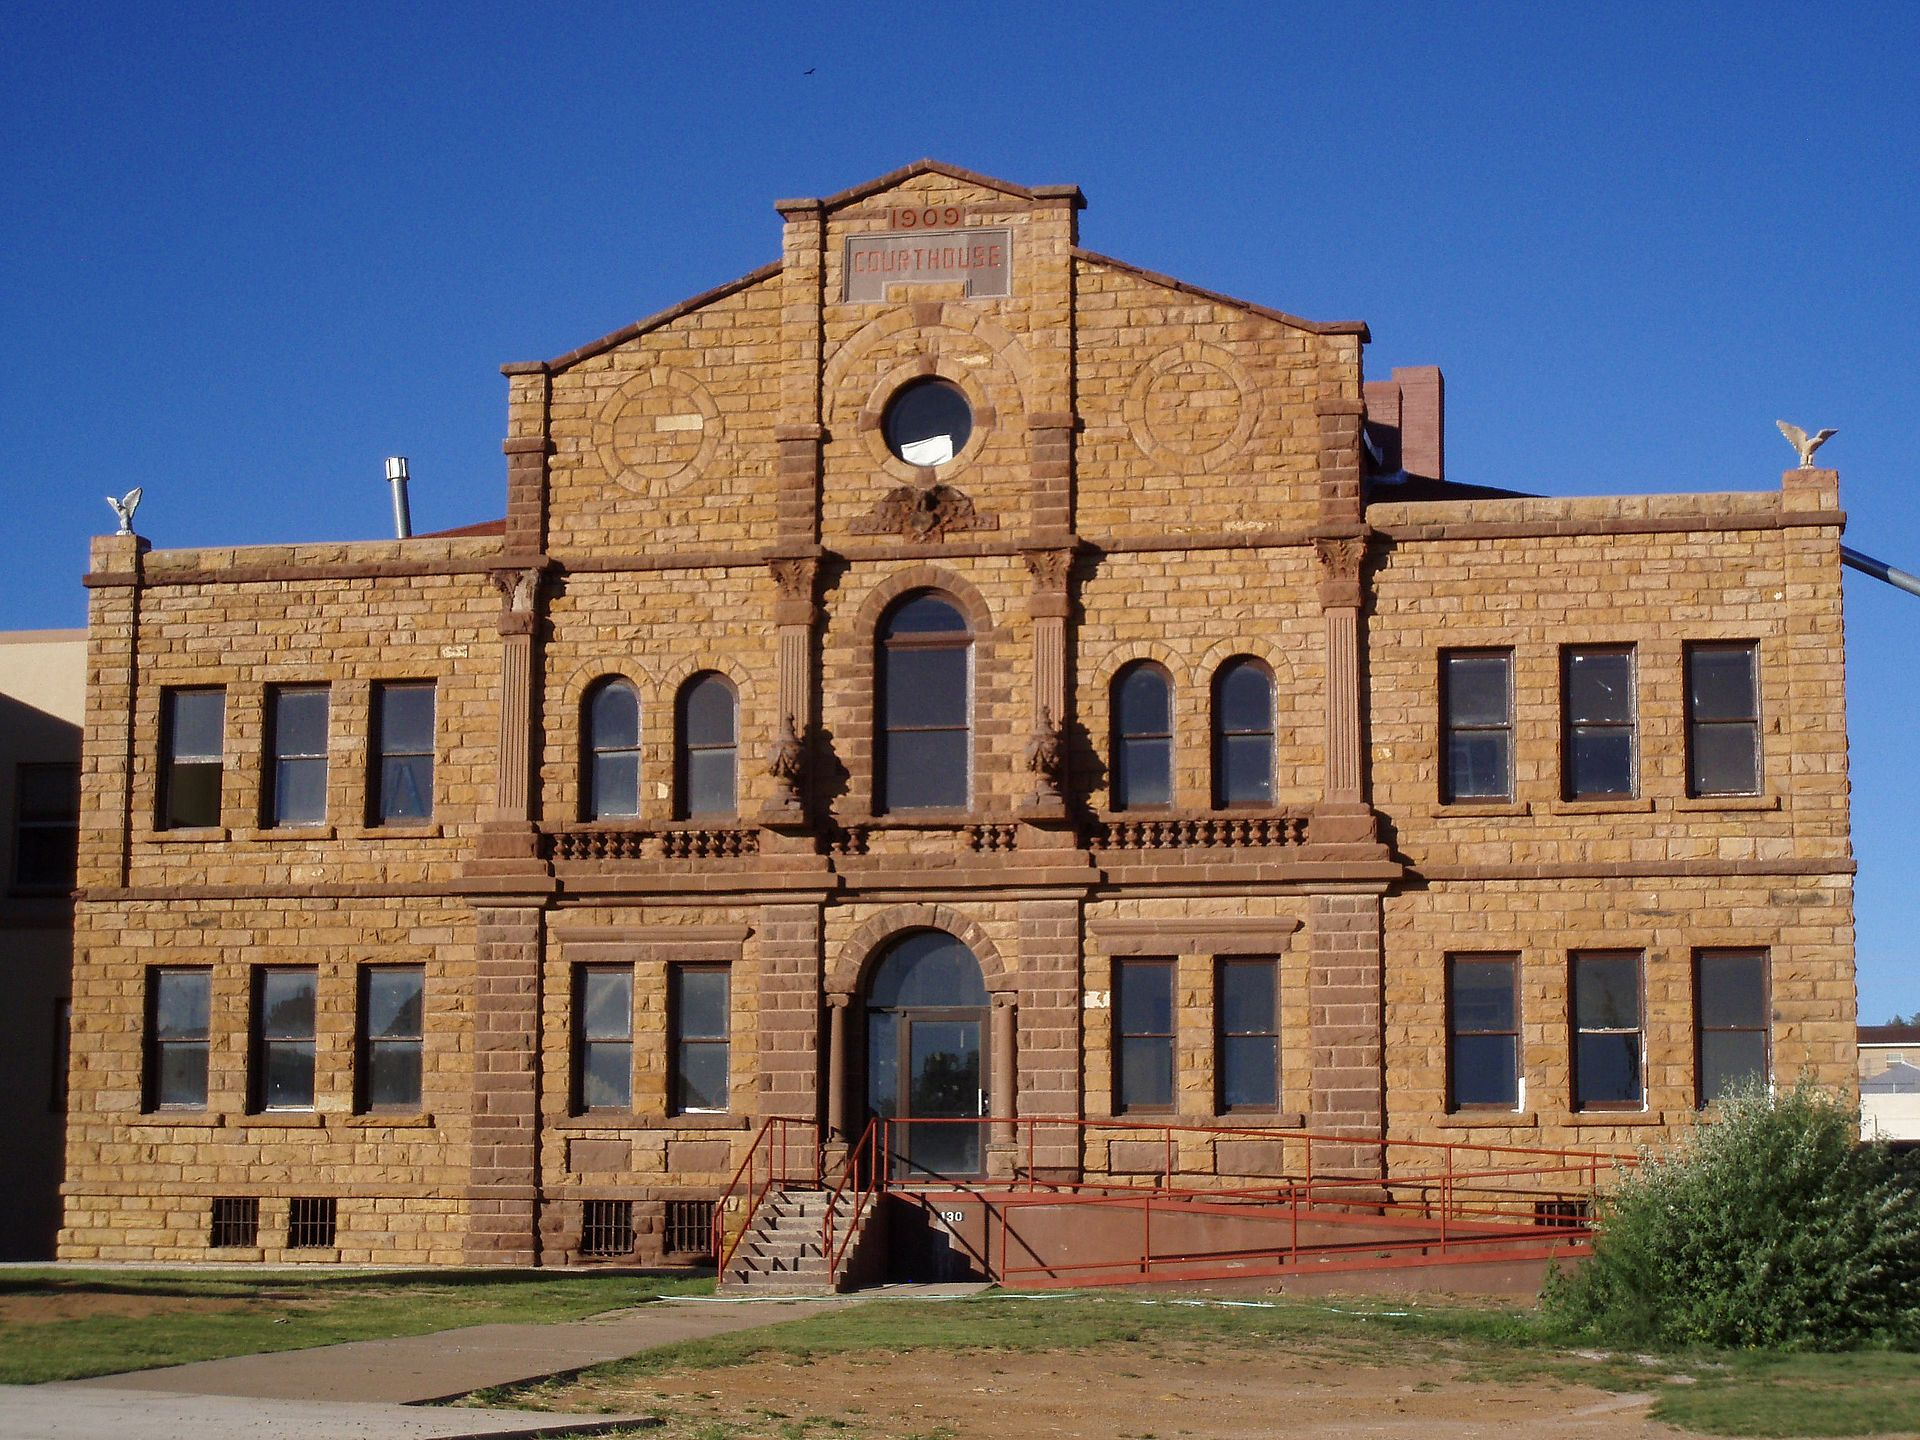 Guadalupe Courthouse in Santa Rosa, NM